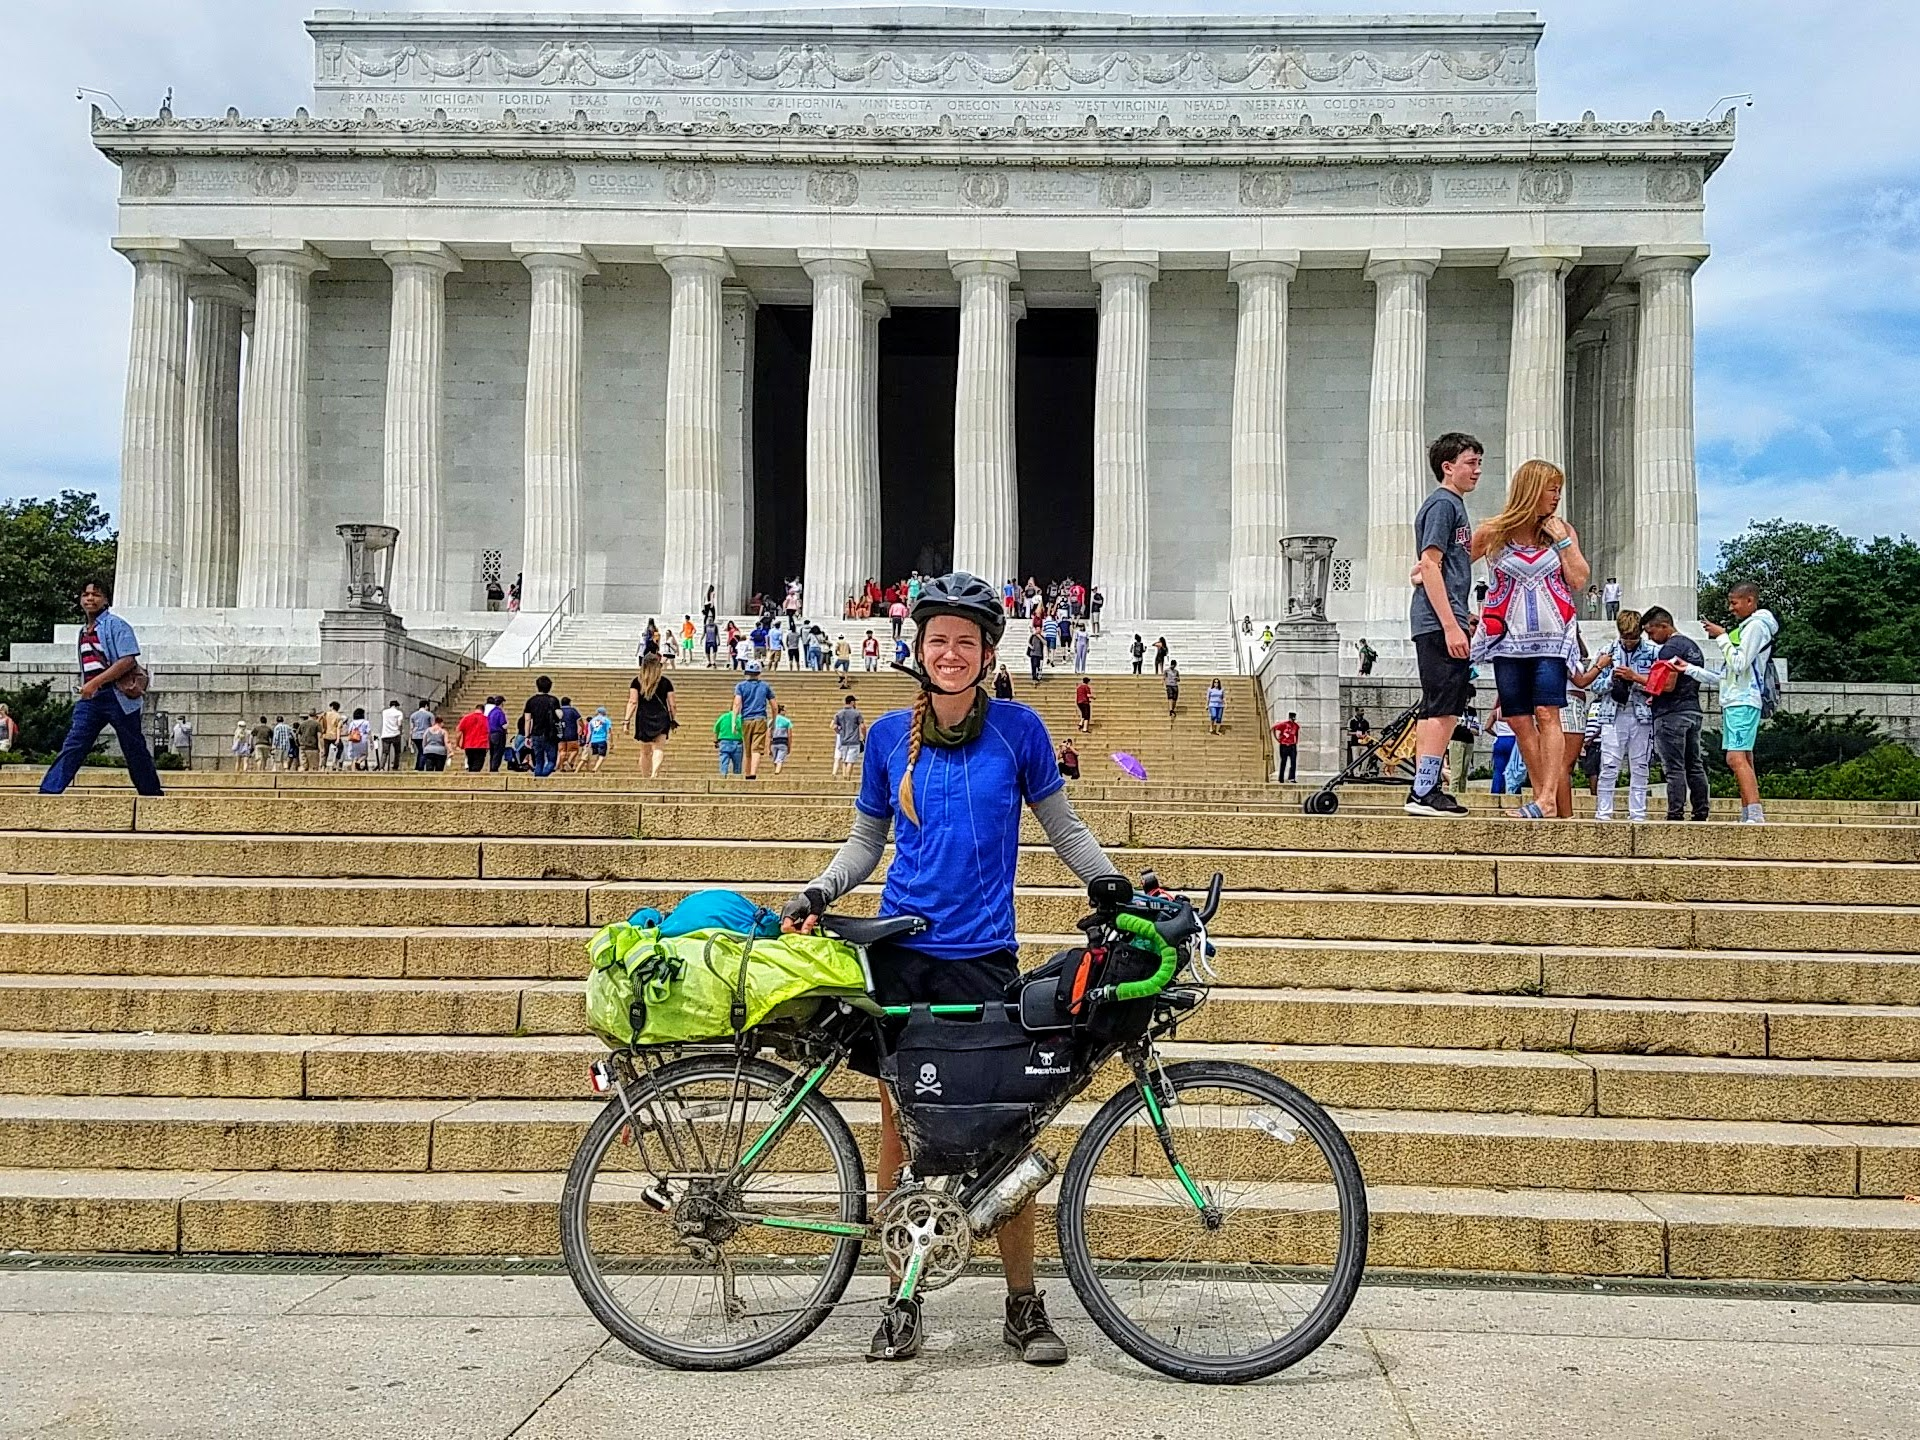 Alissa Bell and her bicycle in front of the Lincoln Memorial